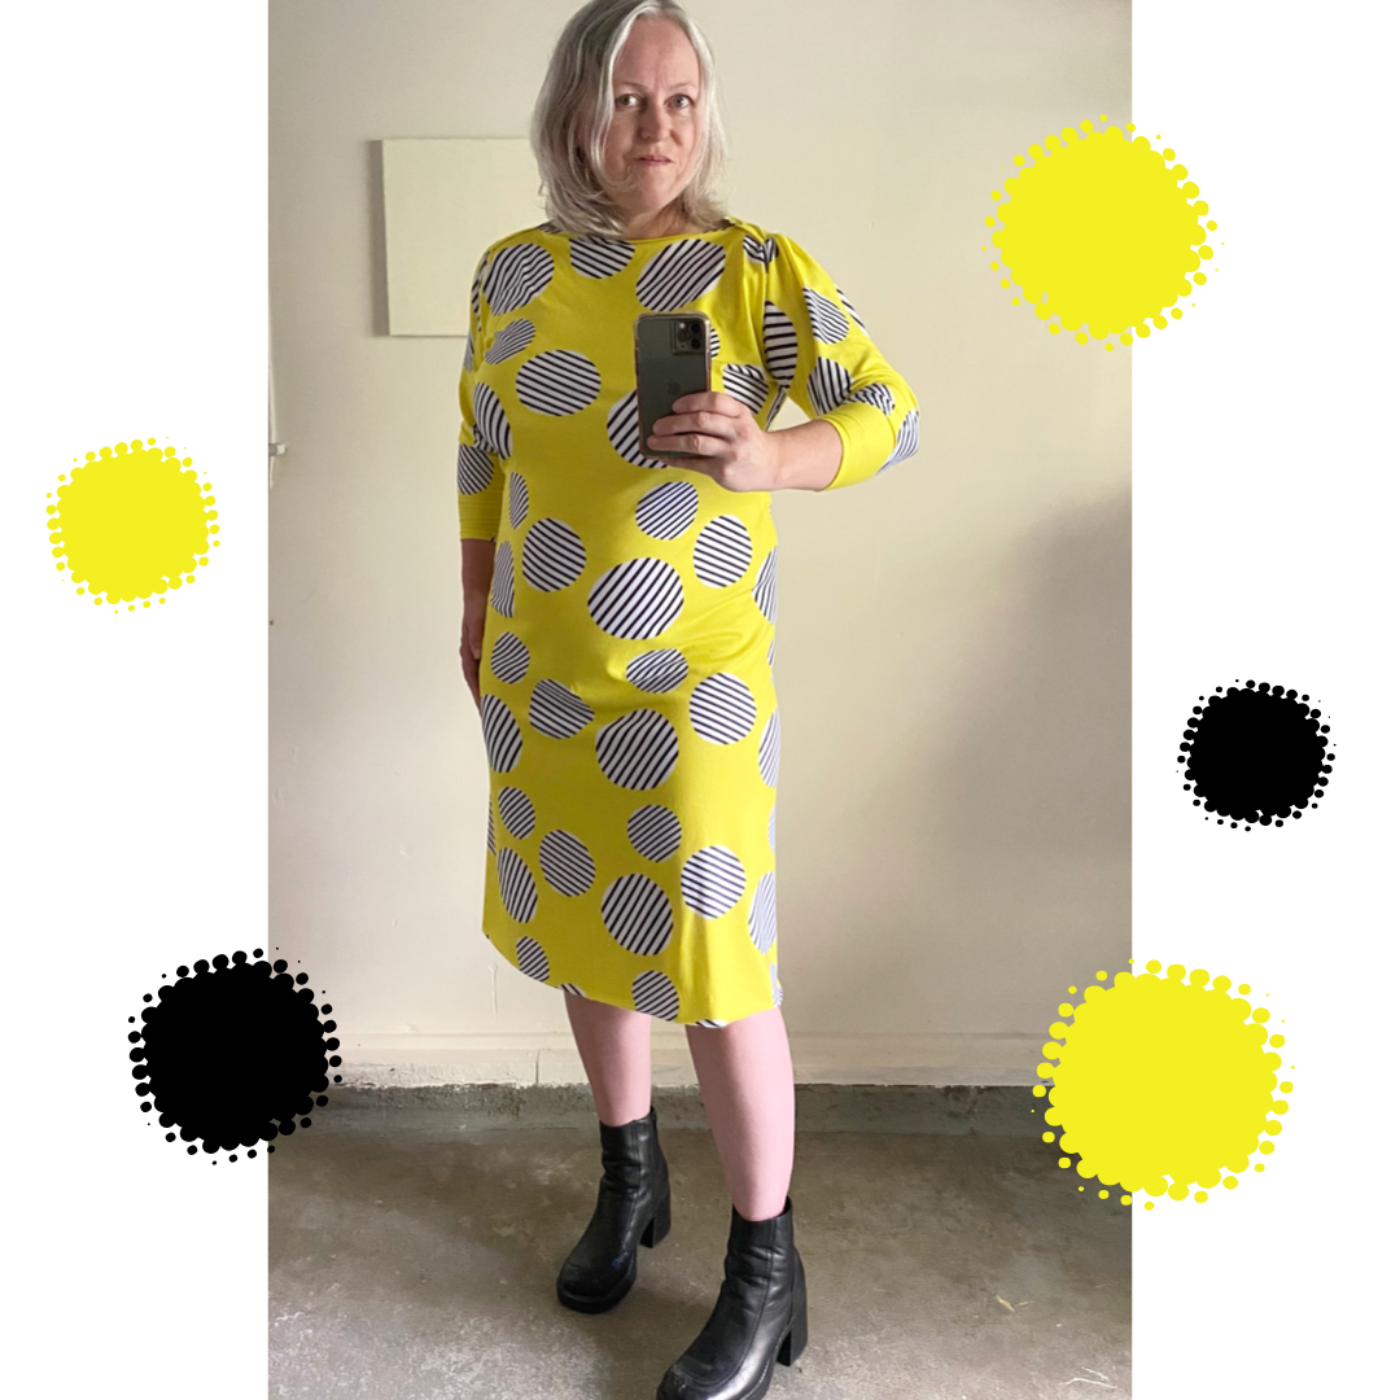 Ann Sullivan-Treacy wears a bright yellow dress with striped black and white circles